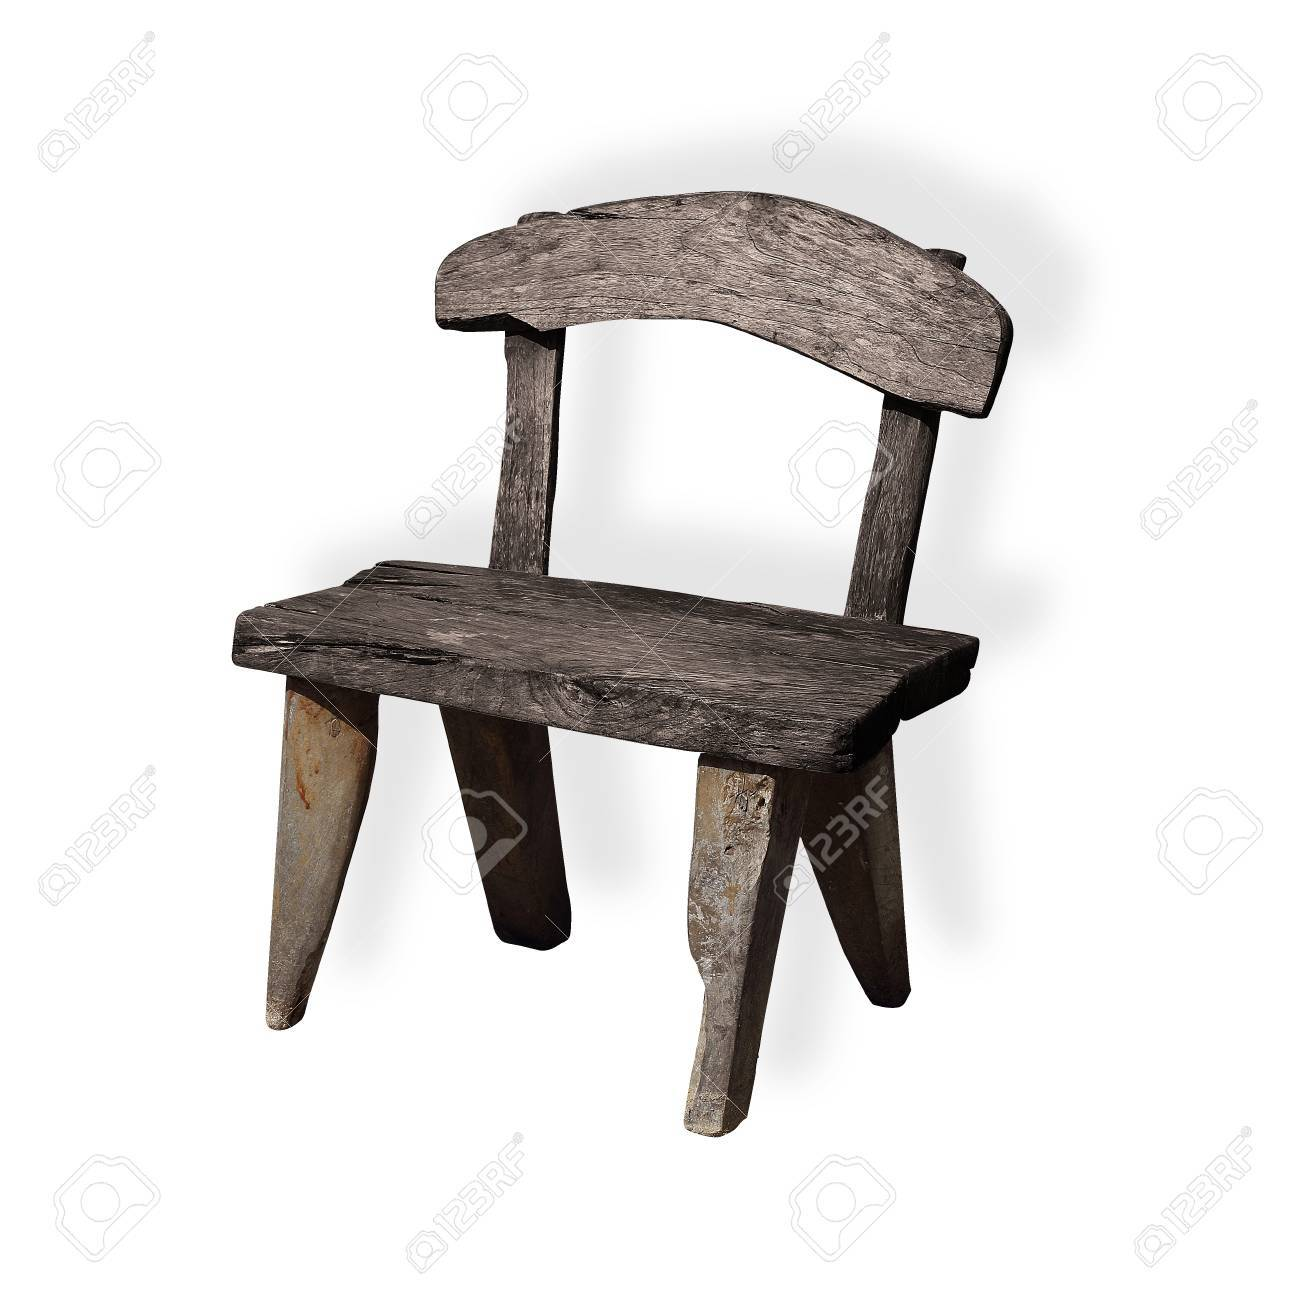 unique wooden chair